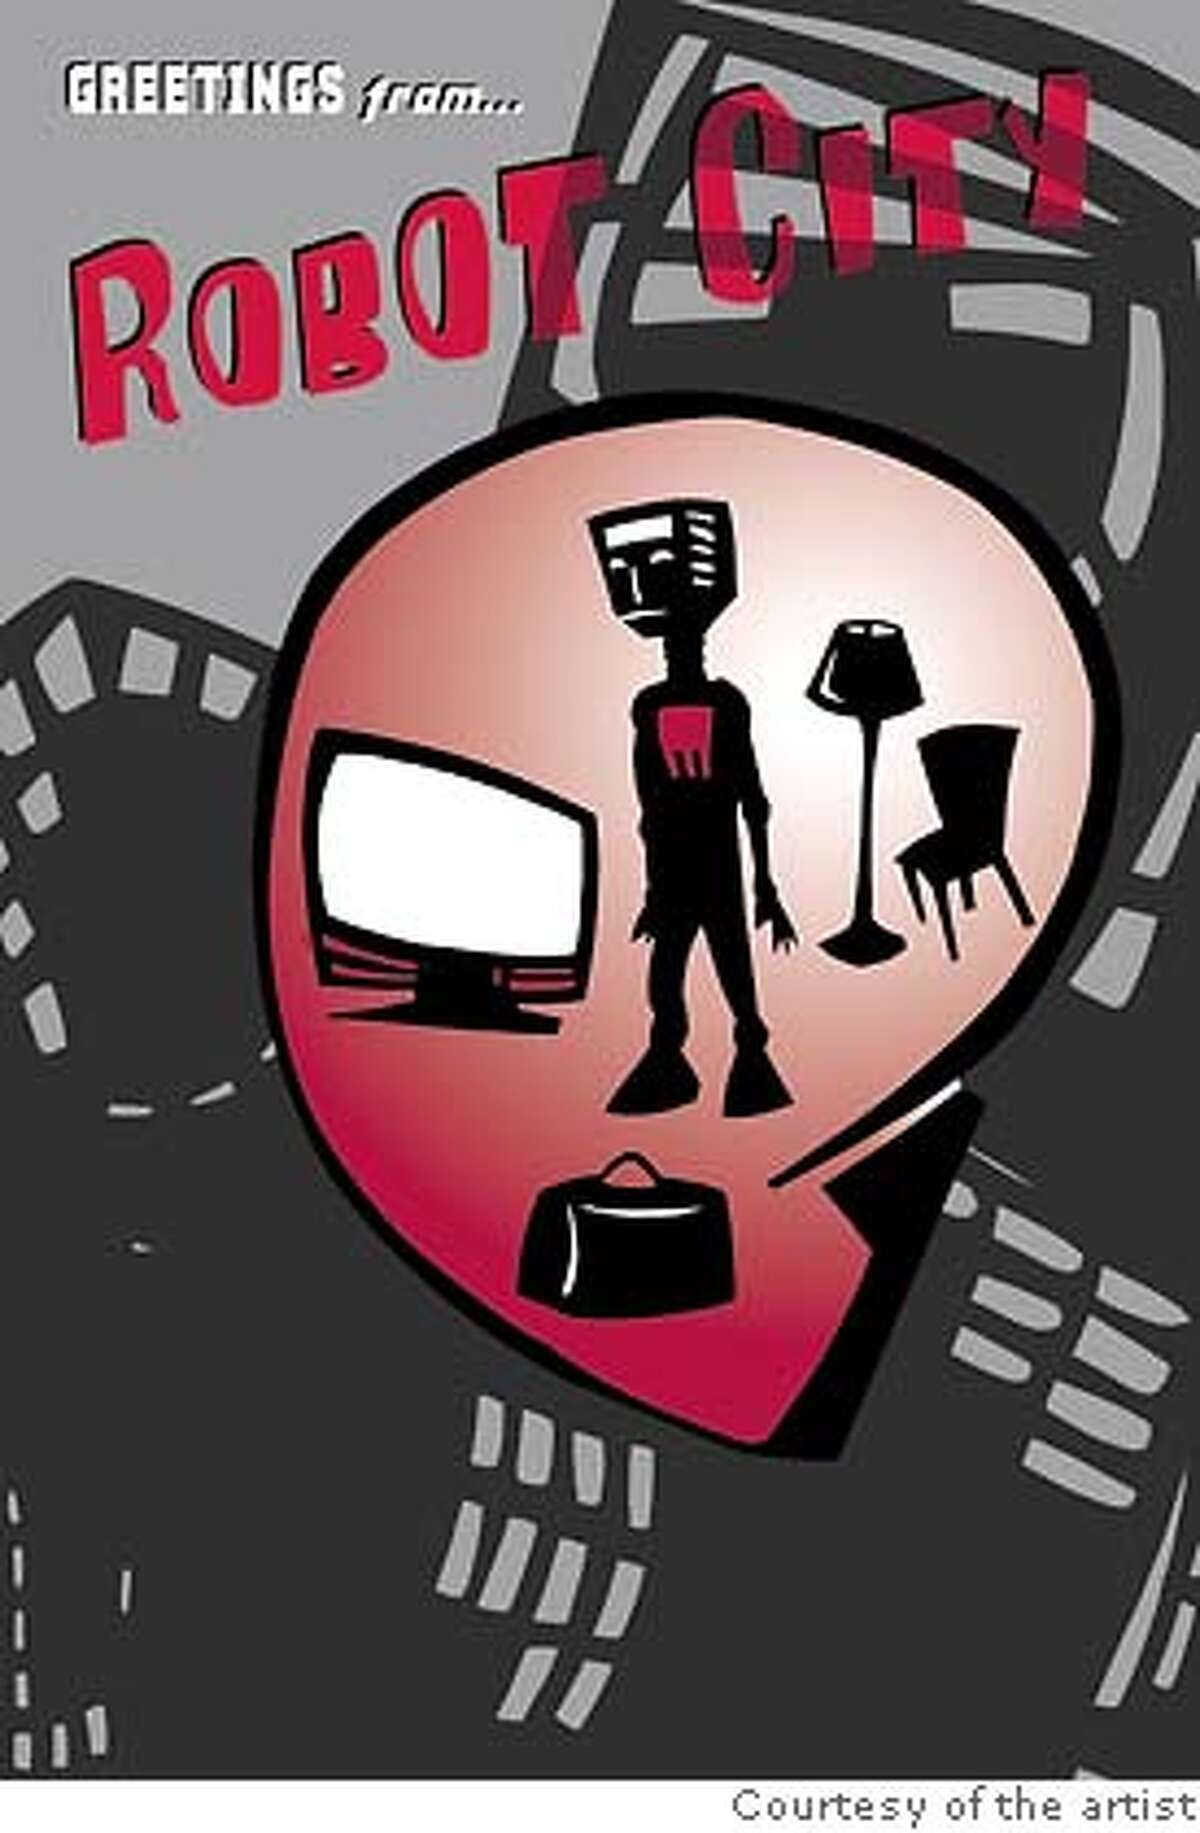 Attachment entitled Daughter Robot City should be captioned: Eliot K. Daughtry, Robot City, illustration courtesy of the artist.